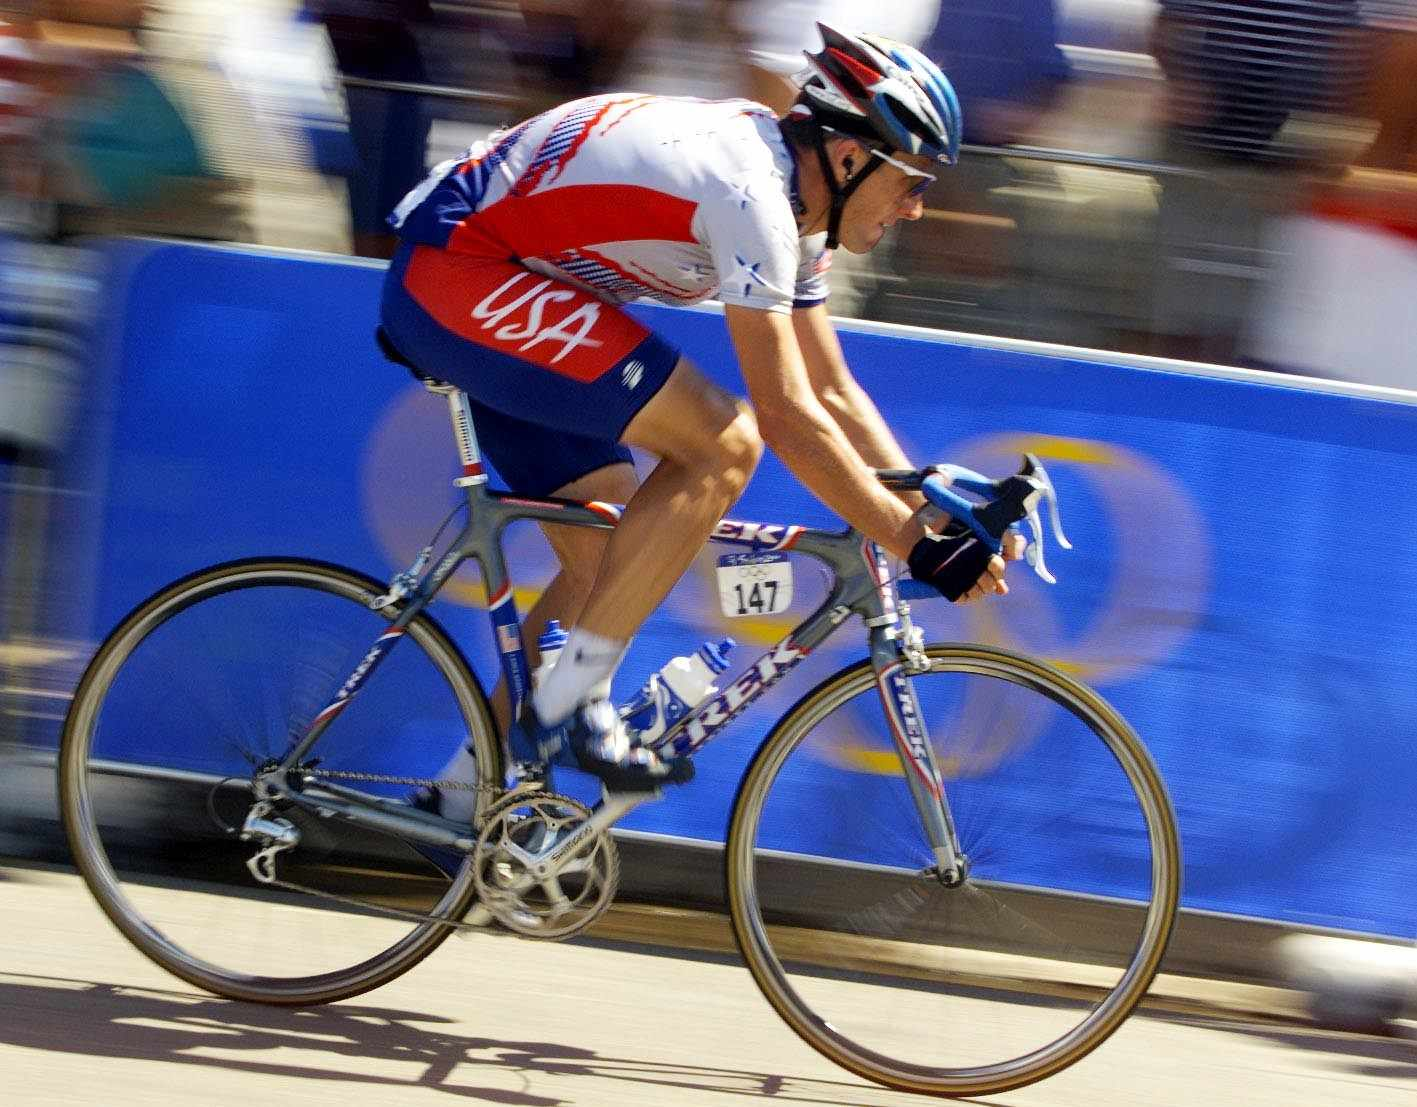 Lance Armstrong in the Men's Road Race at the Sydney 2000 Olympic Games, held at Centennial Park in Sydney, Australia.